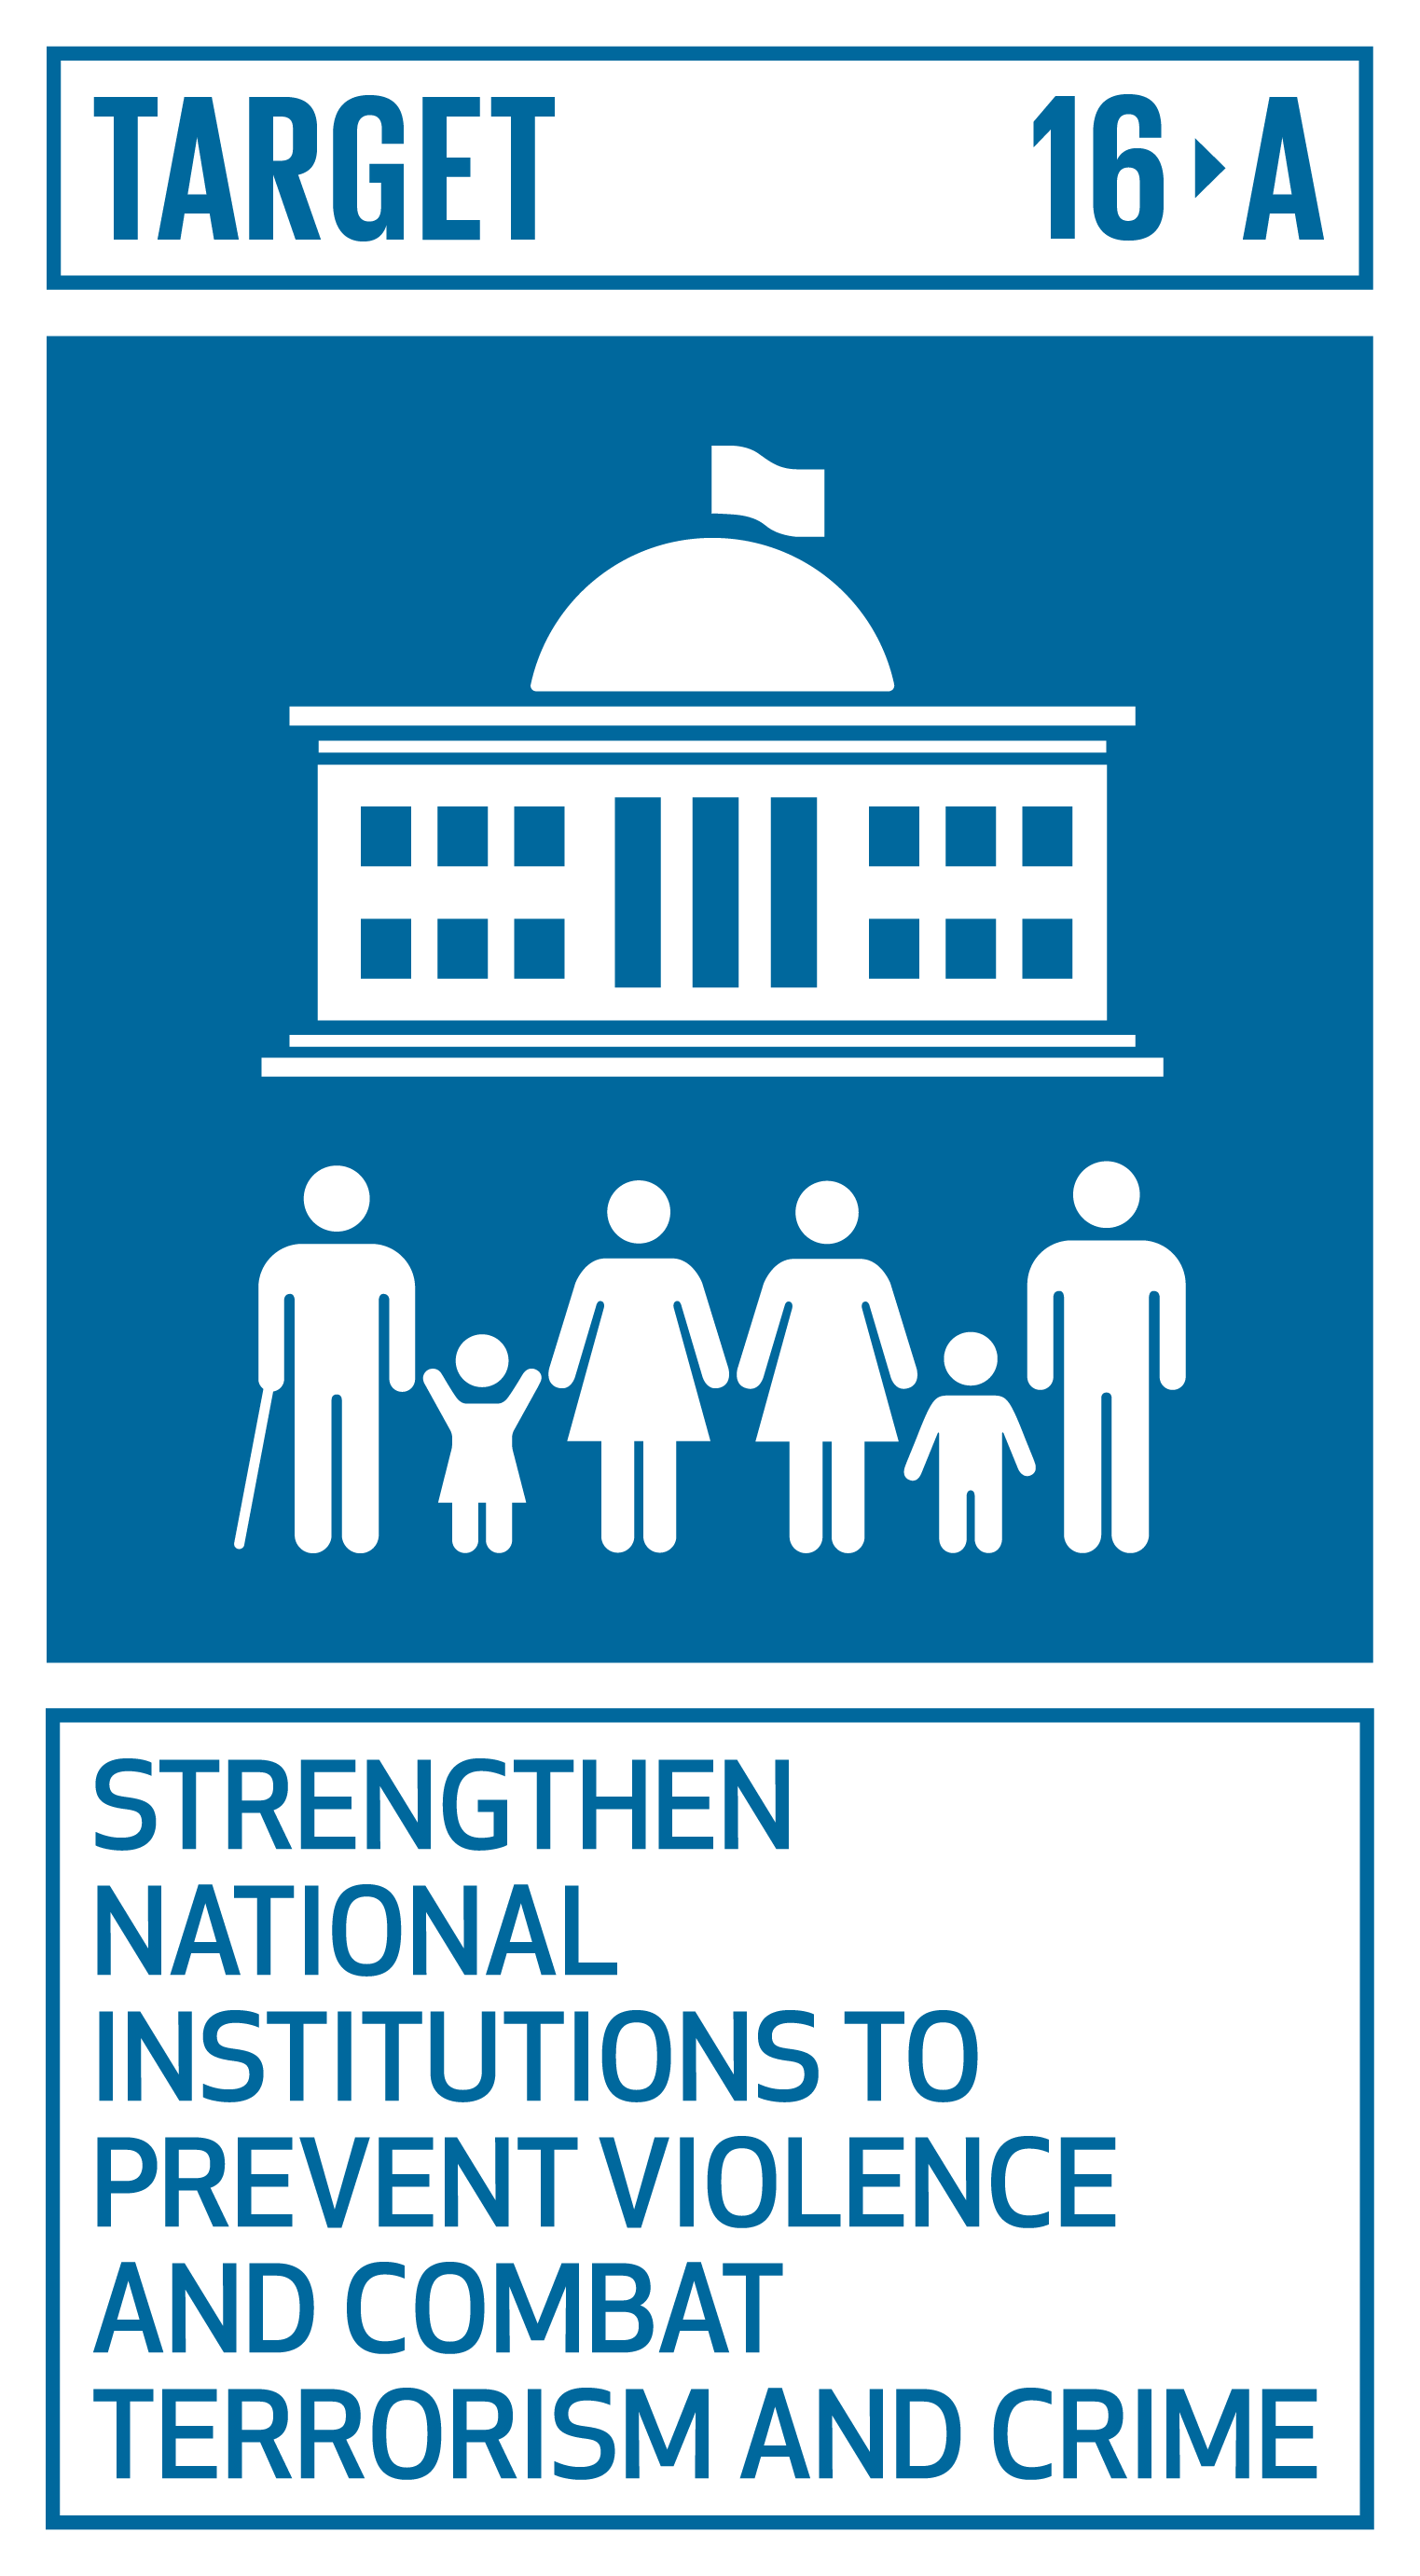 Strengthen relevant national institutions, including through international cooperation, for building capacity at all levels, in particular in developing countries, to prevent violence and combat terrorism and crime.   INDICATORS    16.a.1  Existence of independent national human rights institutions in compliance with the Paris Principles